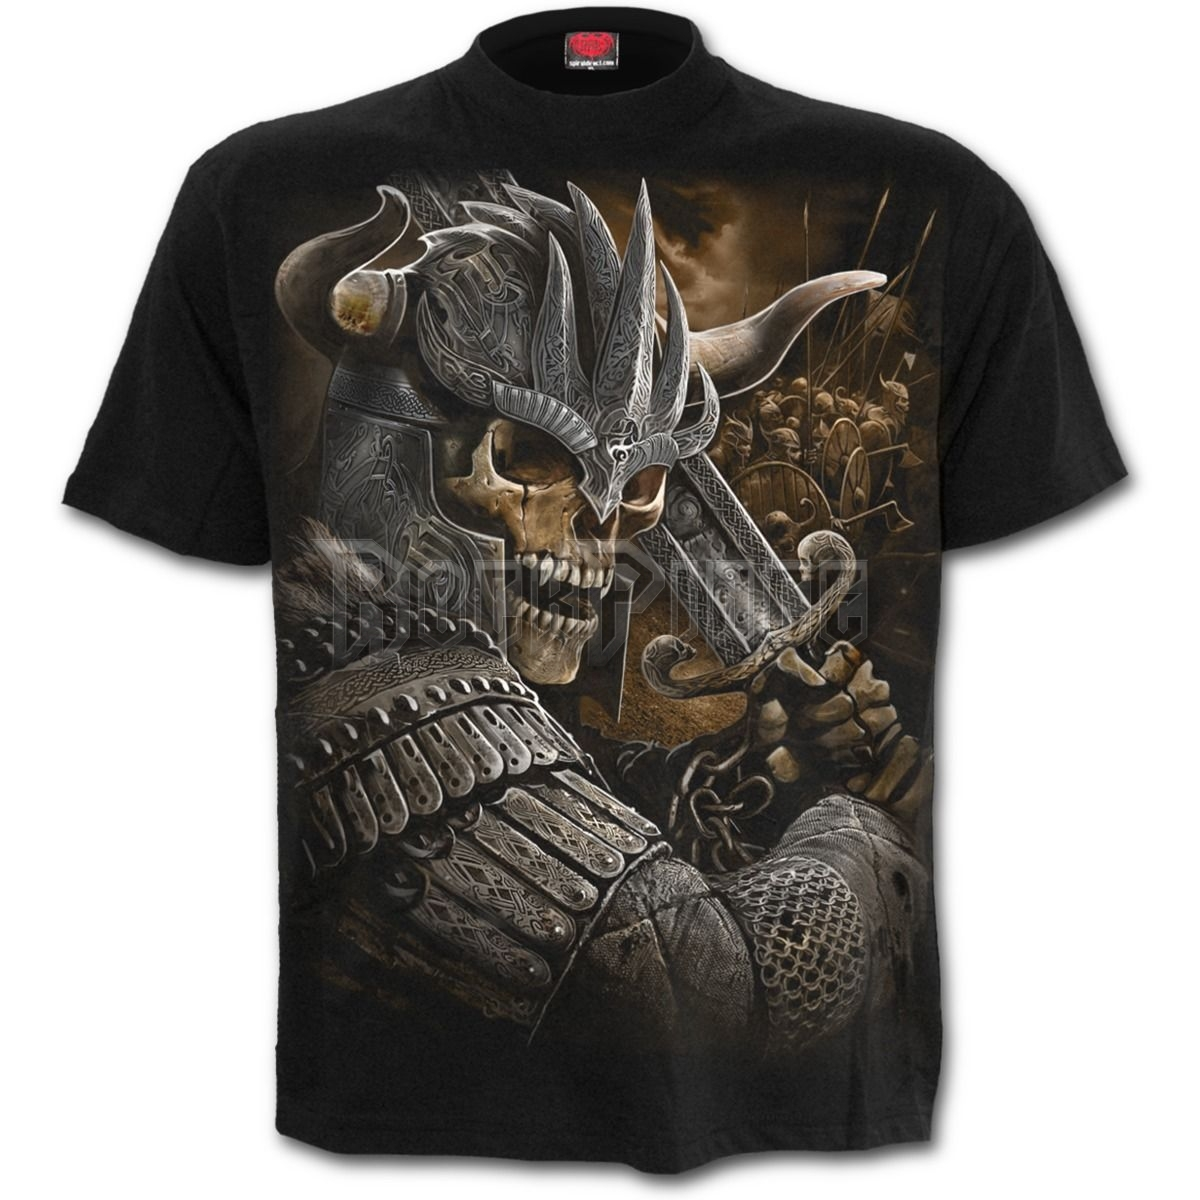 VIKING WARRIOR - T-Shirt Black - L040M101